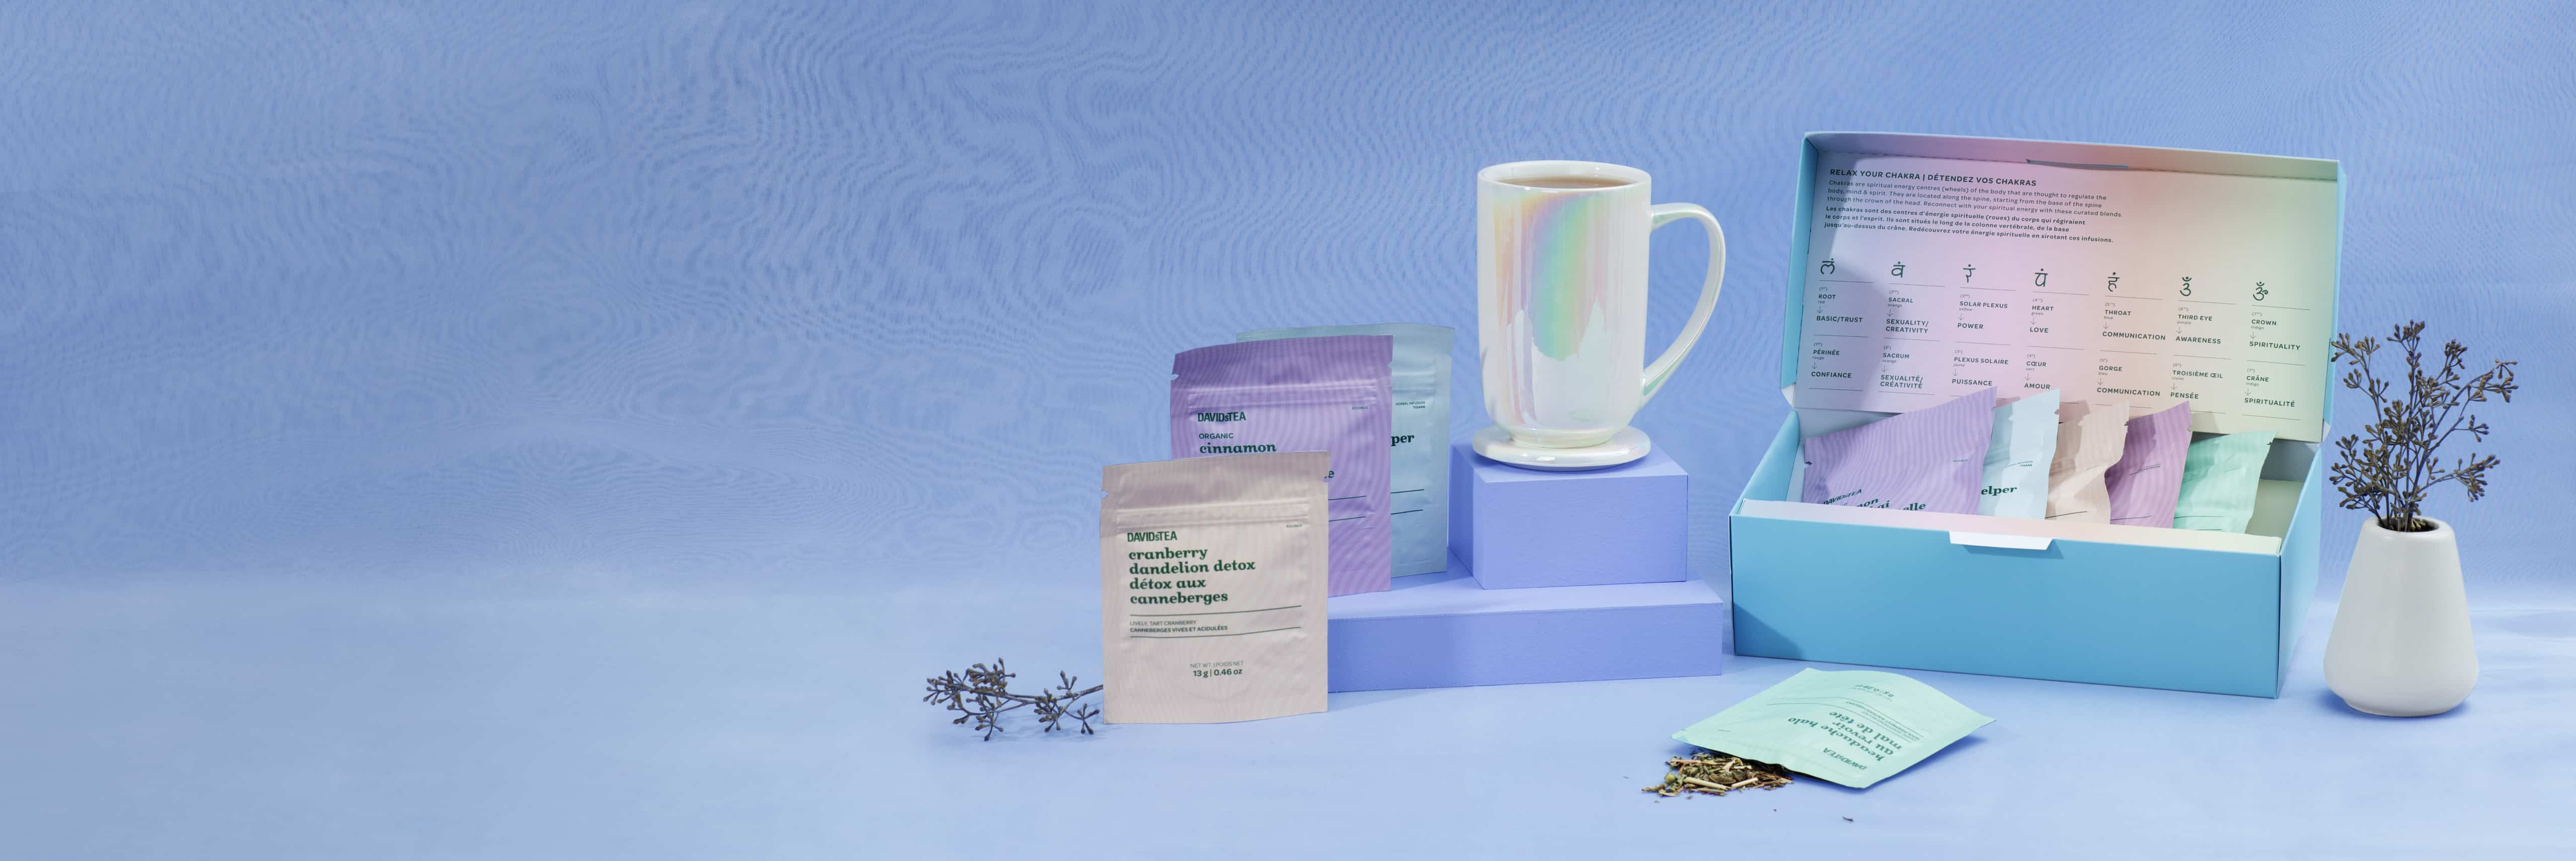 White opalescent 16 oz ceramic tea mug, open loose leaf tea kit with 5 ayurvedic teas and infusions.